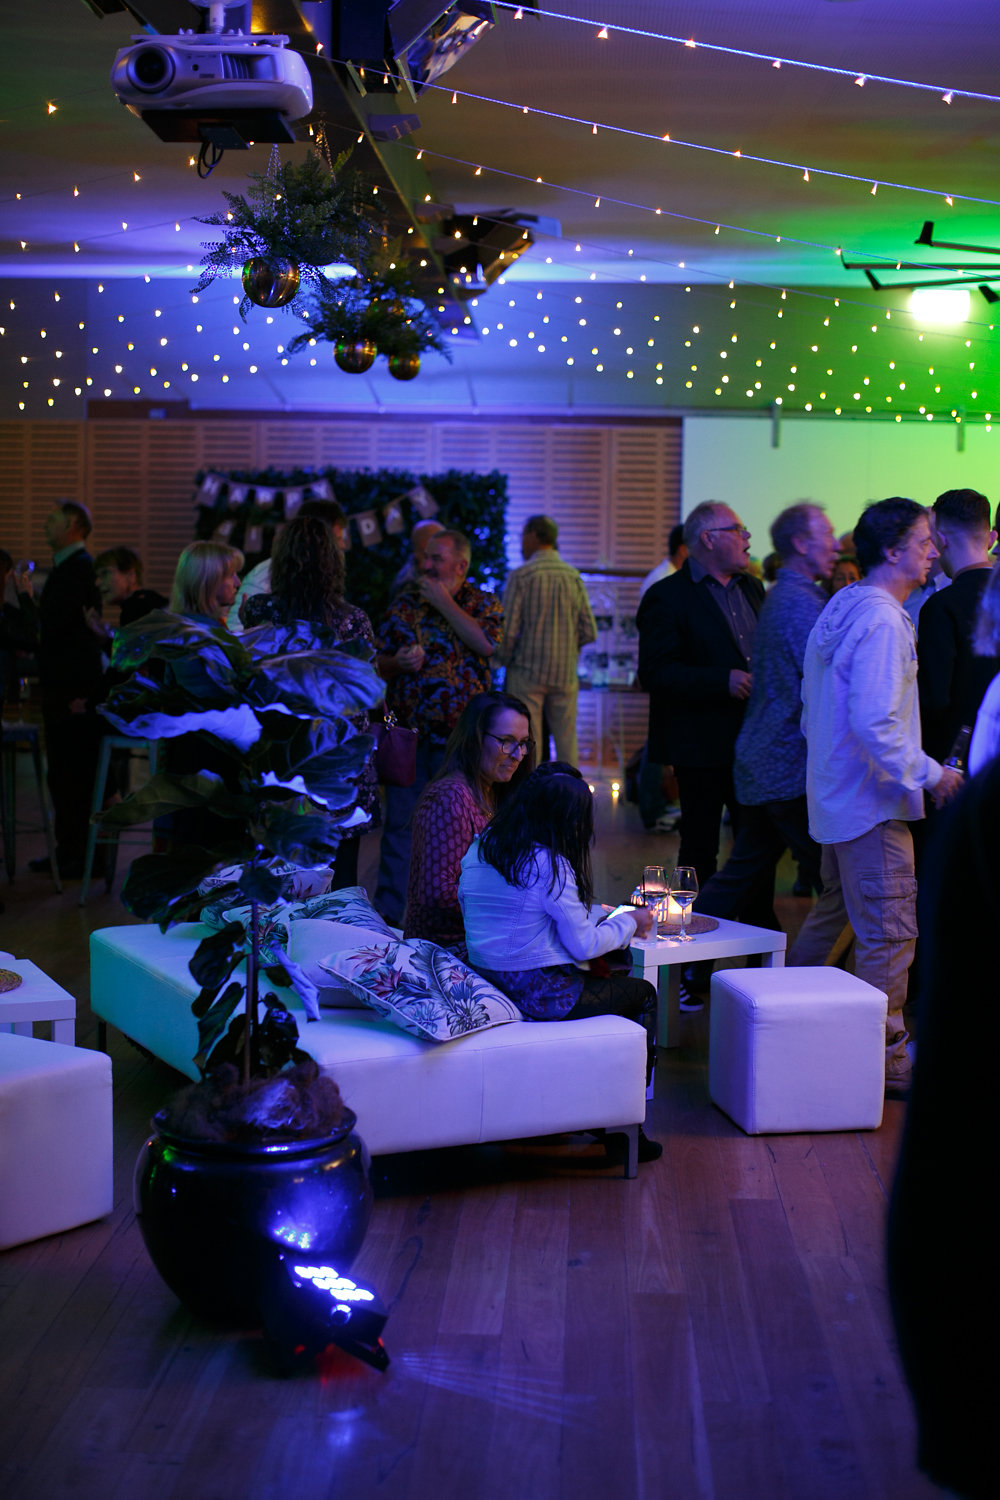 Fairy_Lights_Lounge_Avalon_Beach_Venue.jpg